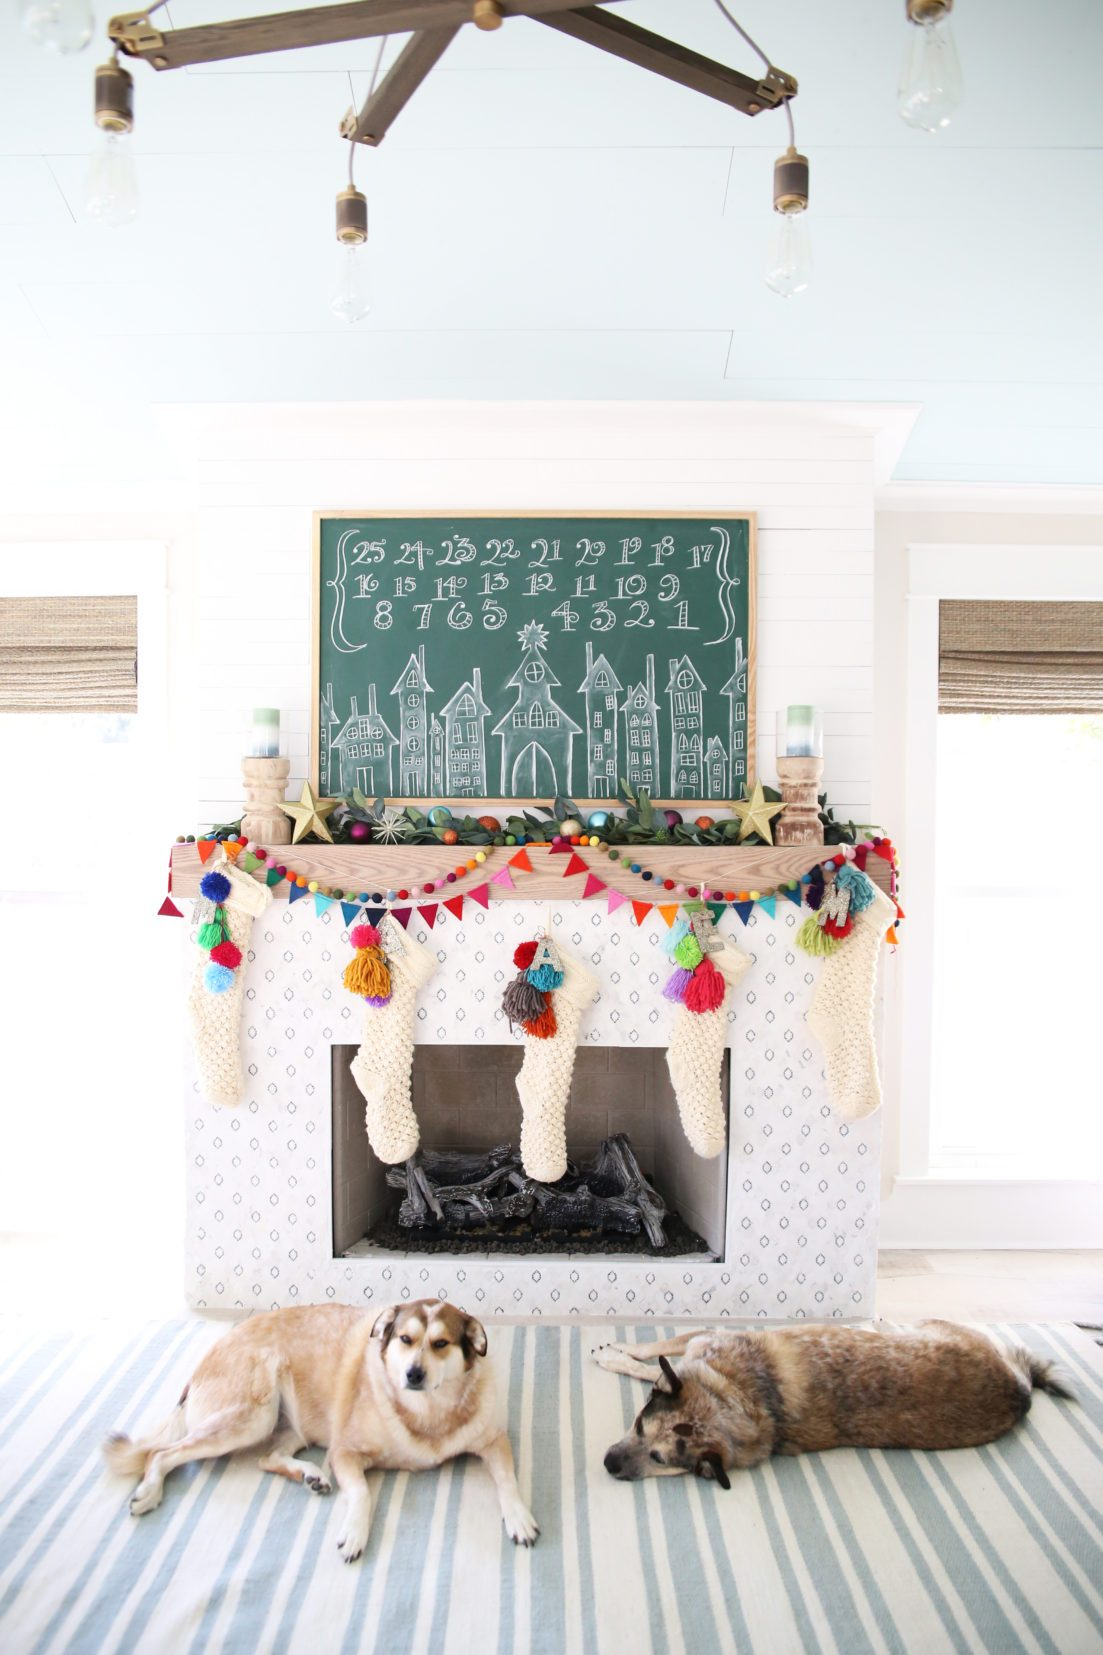 Love this colorful Christmas mantel and chalkboard Advent calendar #colorfulchristmas #christmasdecor #christmasmantel #adventcalendar #chalkart #christmaschalkart